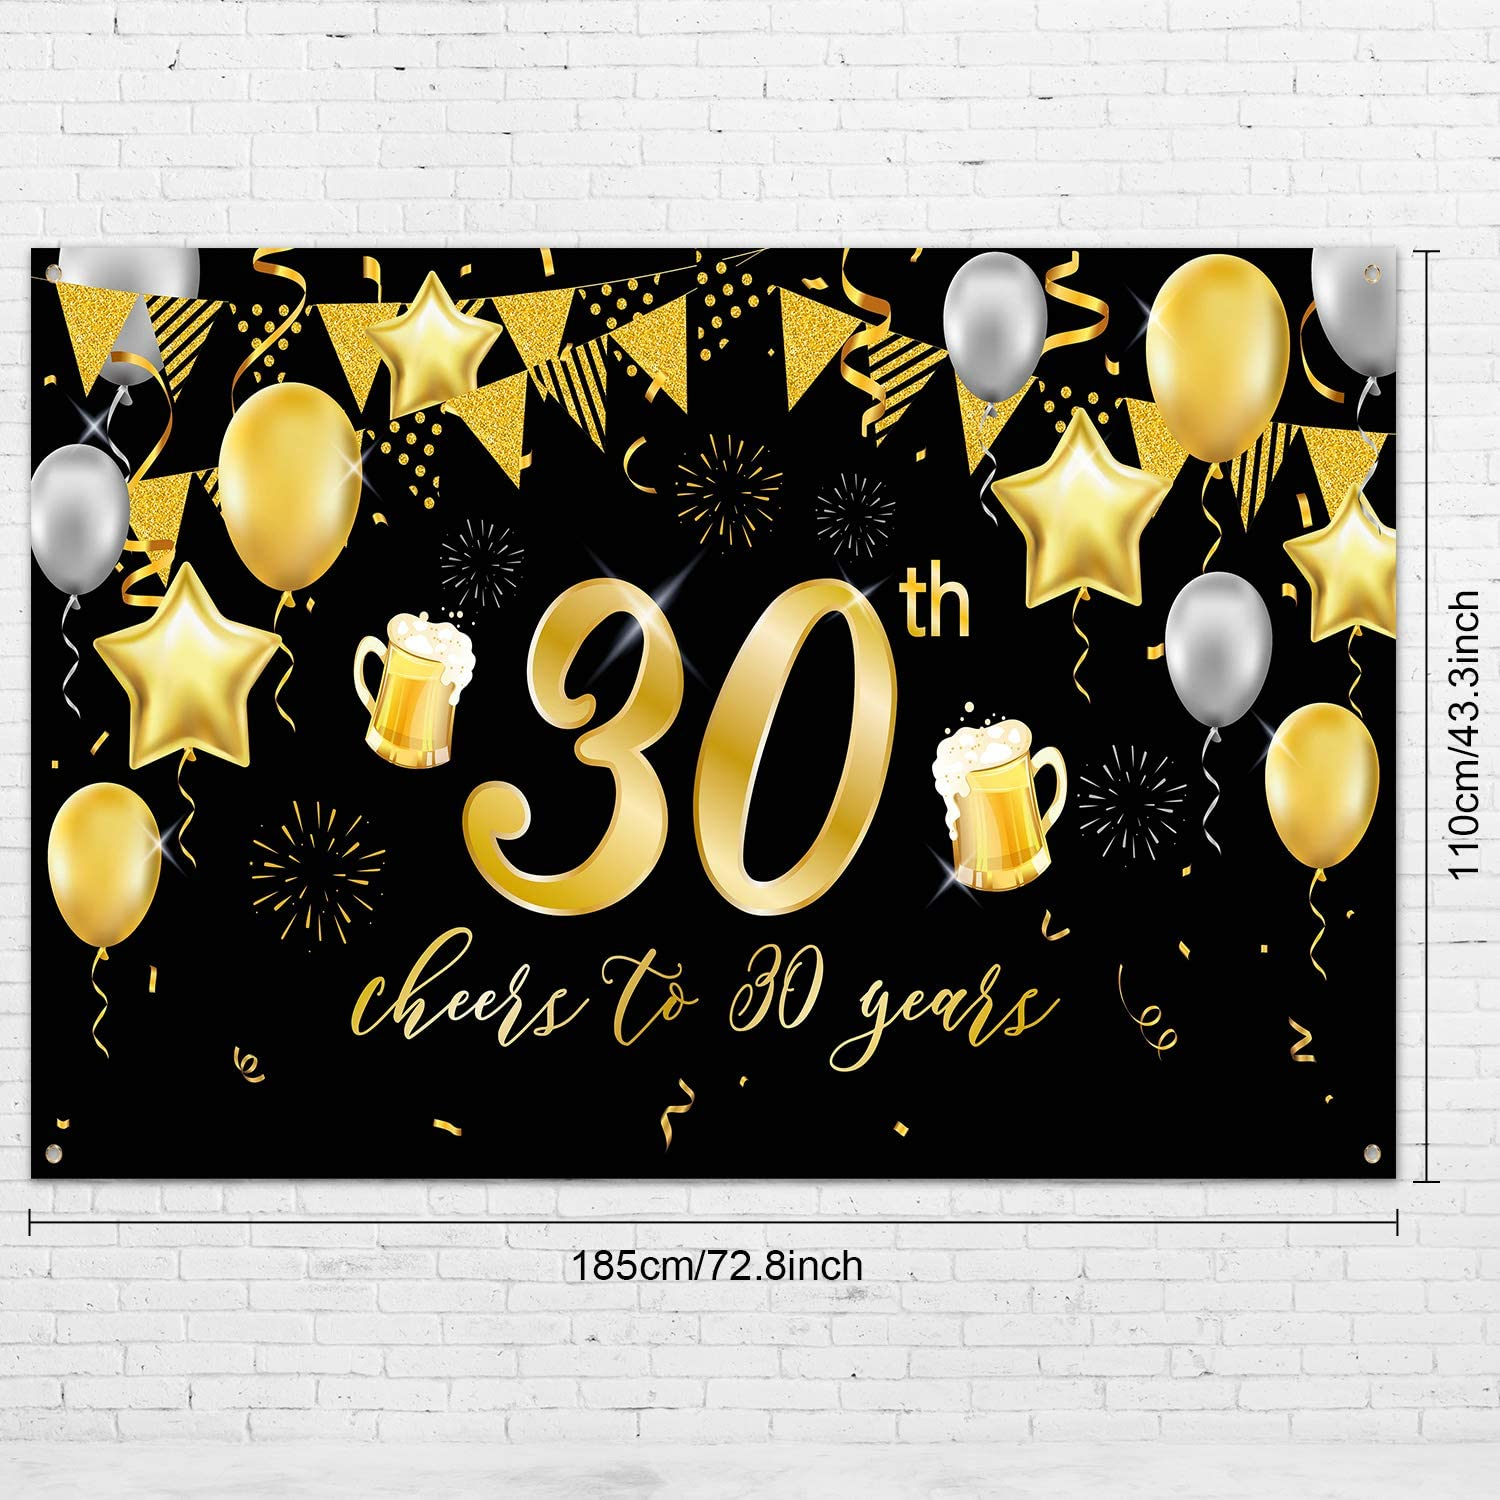 30th Birthday Backdrop,30th Banner for 30th Birthday Decorations